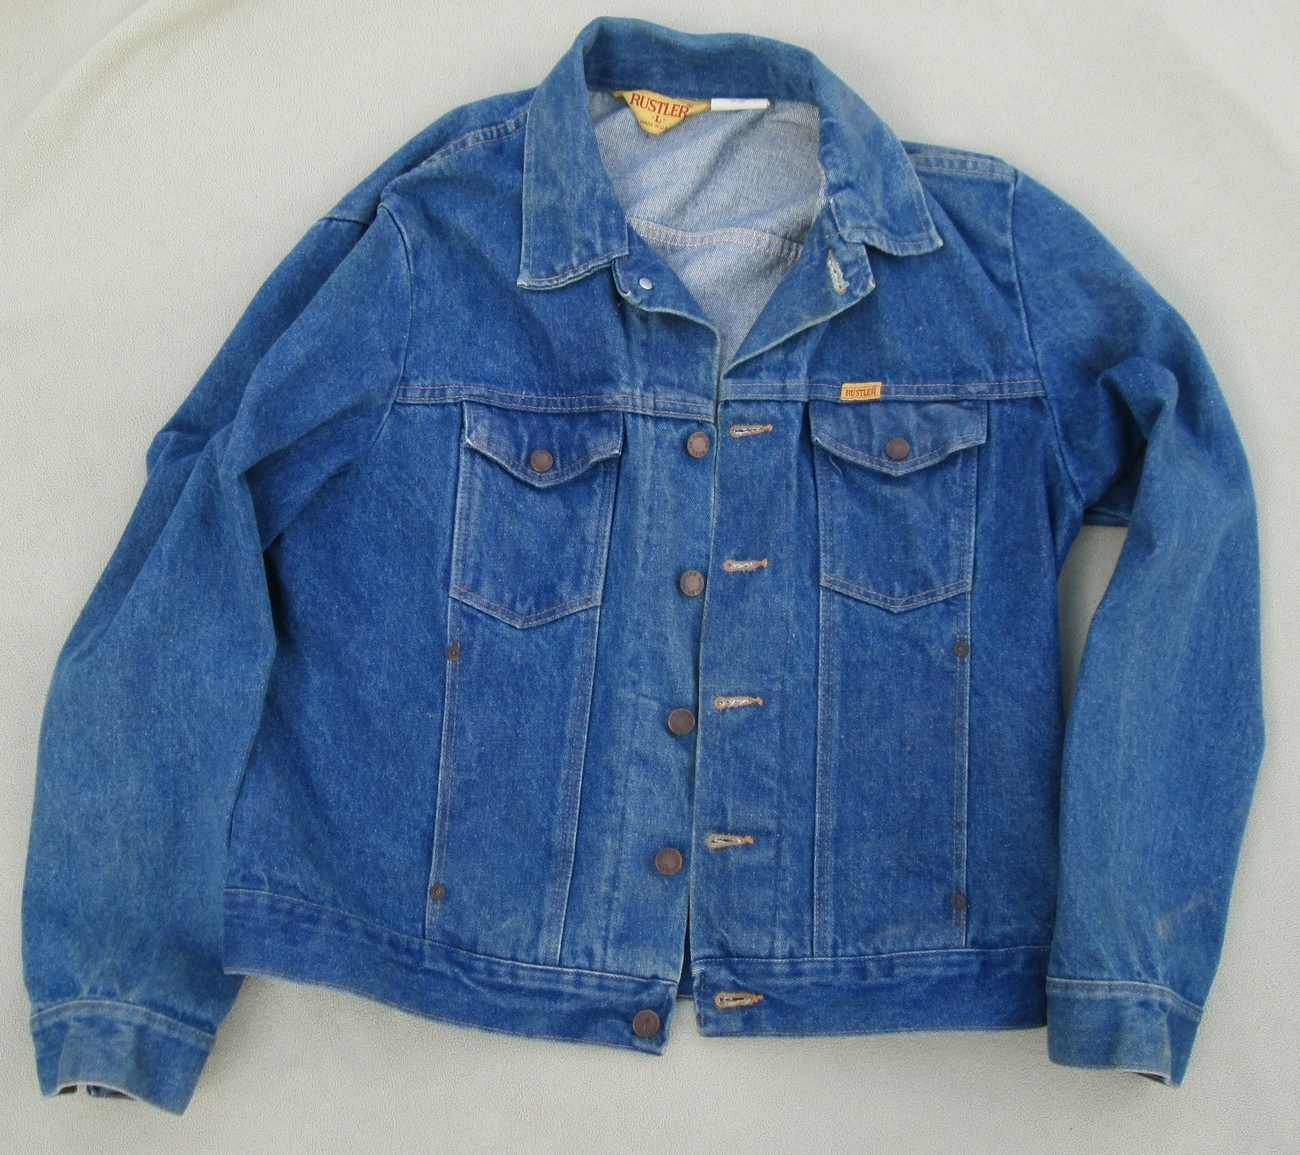 Vintage 1970's Rustler Denim Jean Jacket. Size: Large, Near Excellent Condition.